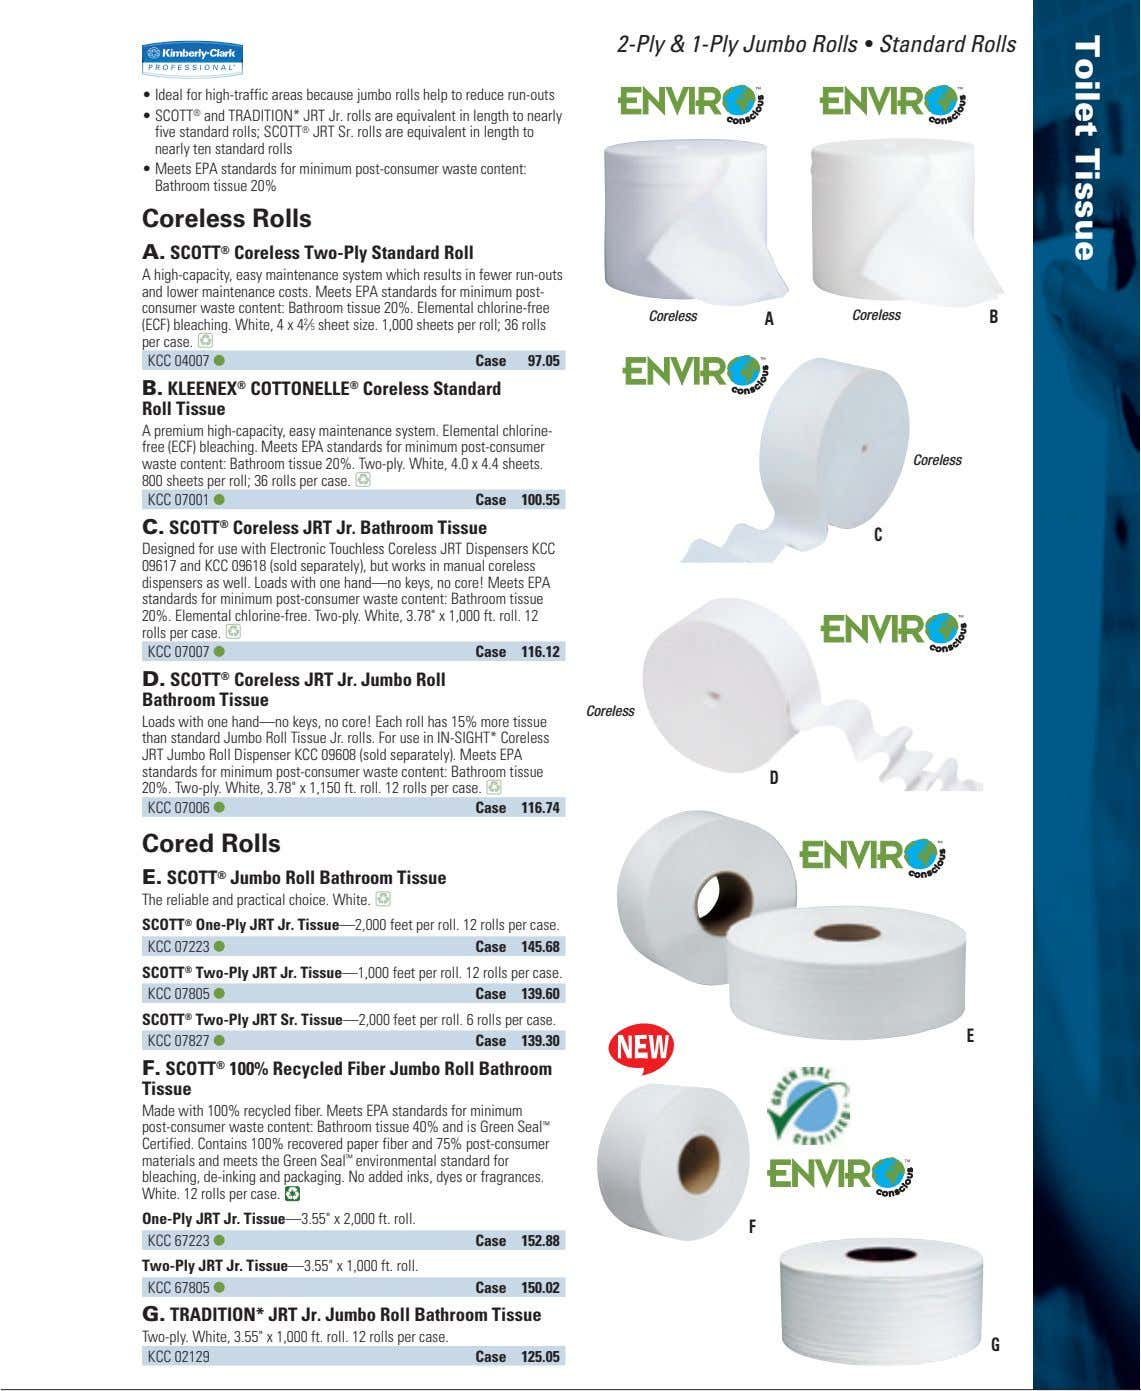 2-Ply & 1-Ply Jumbo Rolls • Standard Rolls • Ideal for high-traffic areas because jumbo